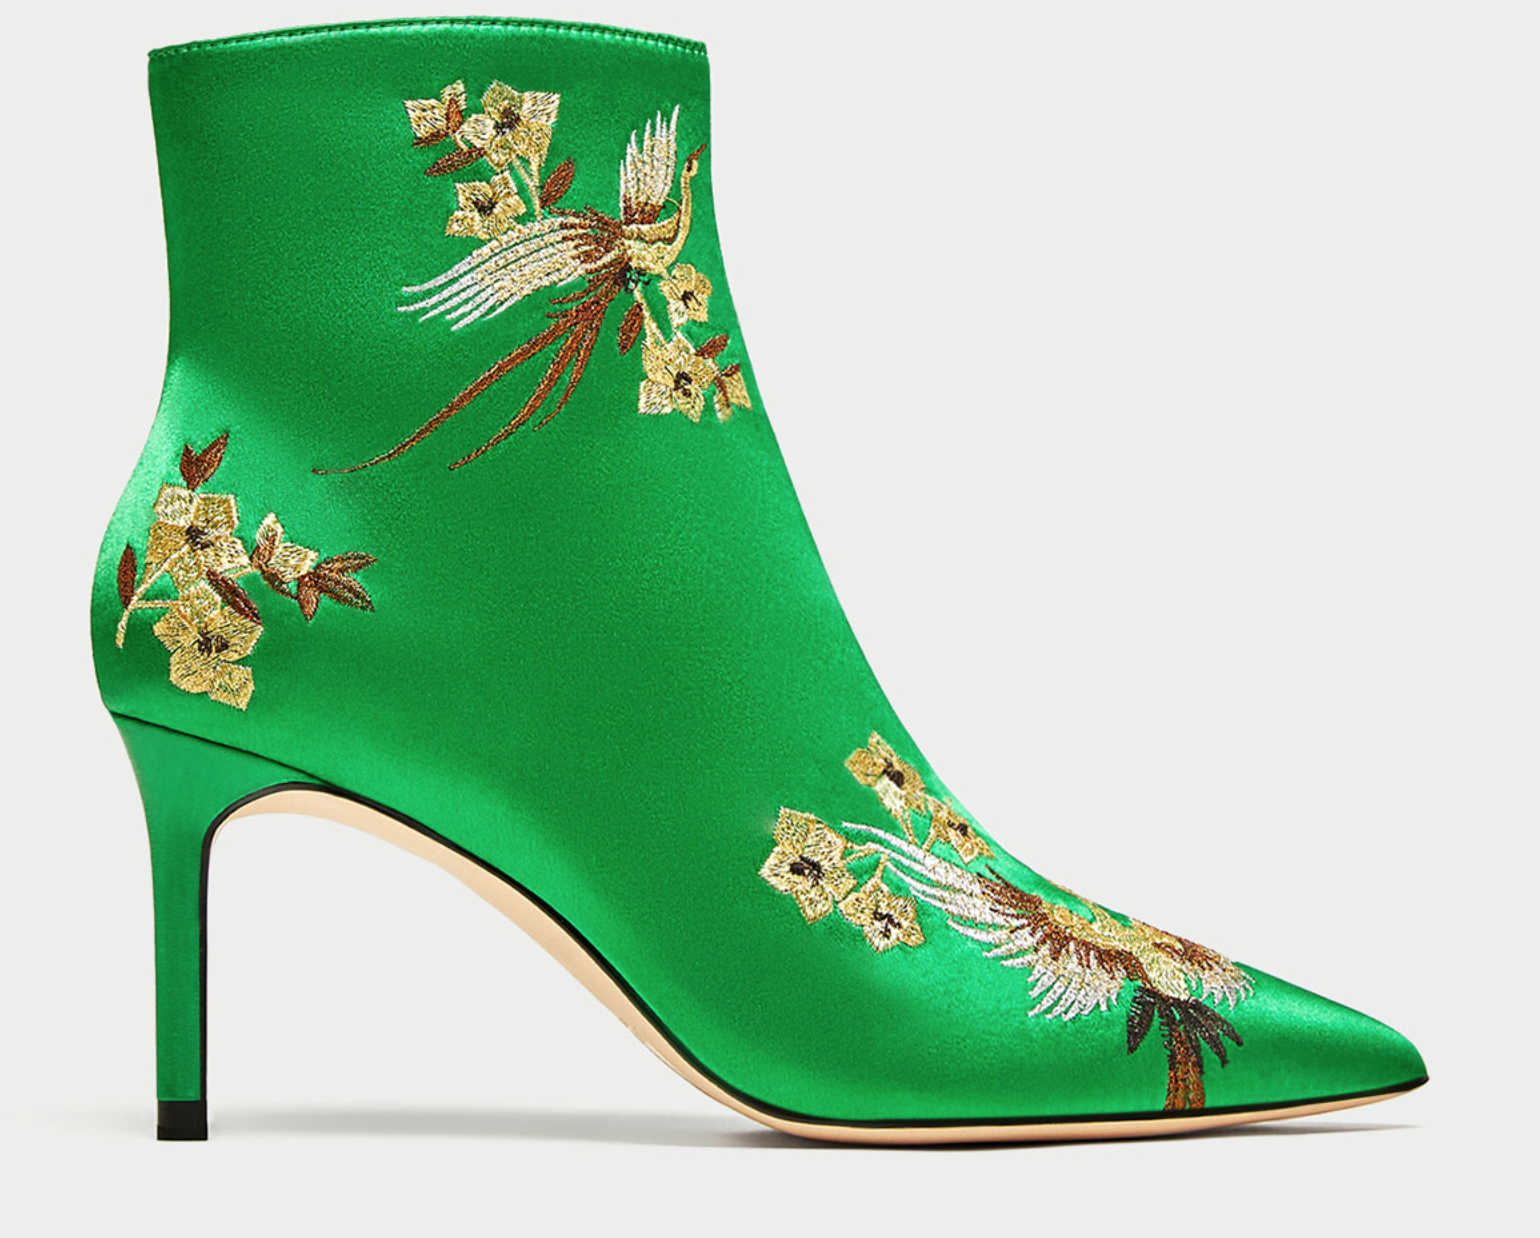 b752cf62ab7 Zara green satin ankle boots with embroidery